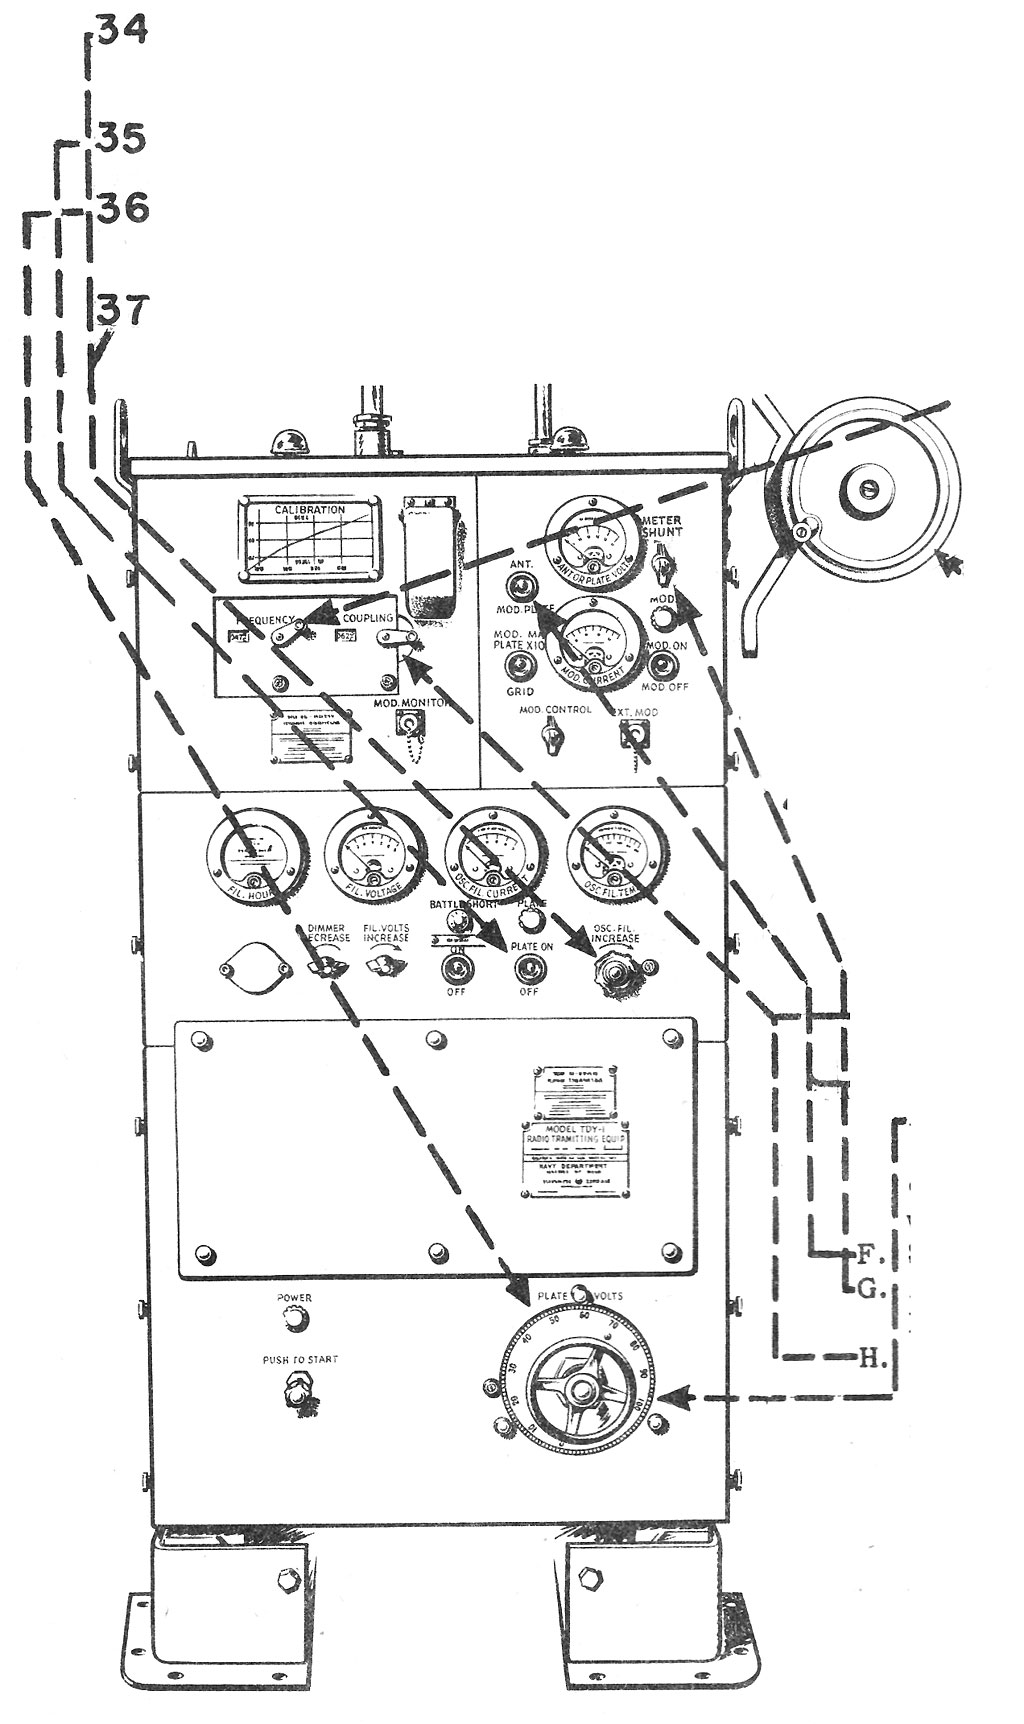 dayton fan 115 volts wiring diagram pneumatic actuator